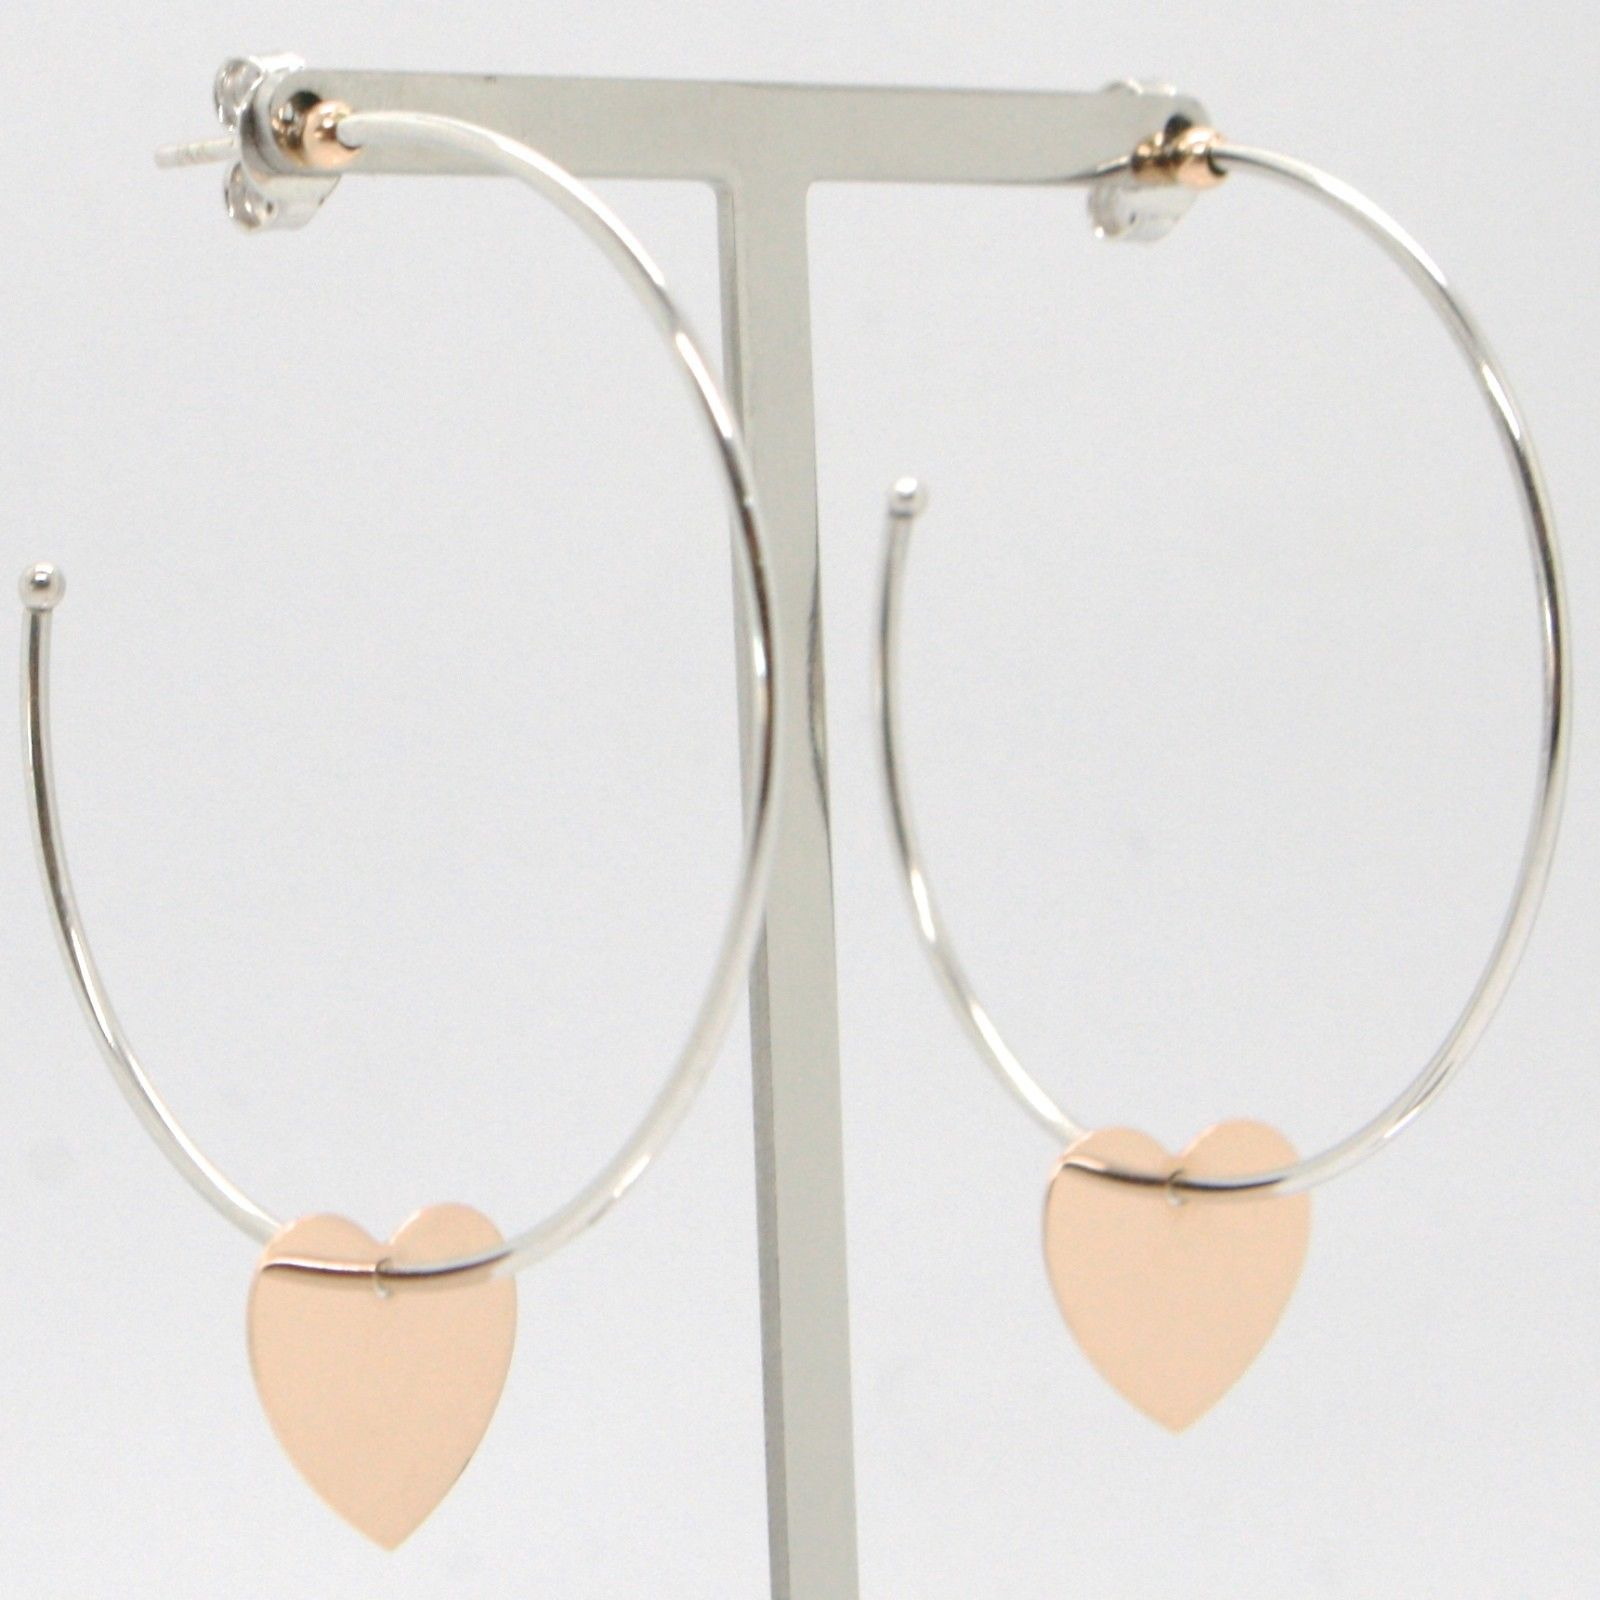 18K WHITE ROSE GOLD PENDANT CIRCLE HOOPS EARRINGS WITH FLAT HEART, MADE IN ITALY